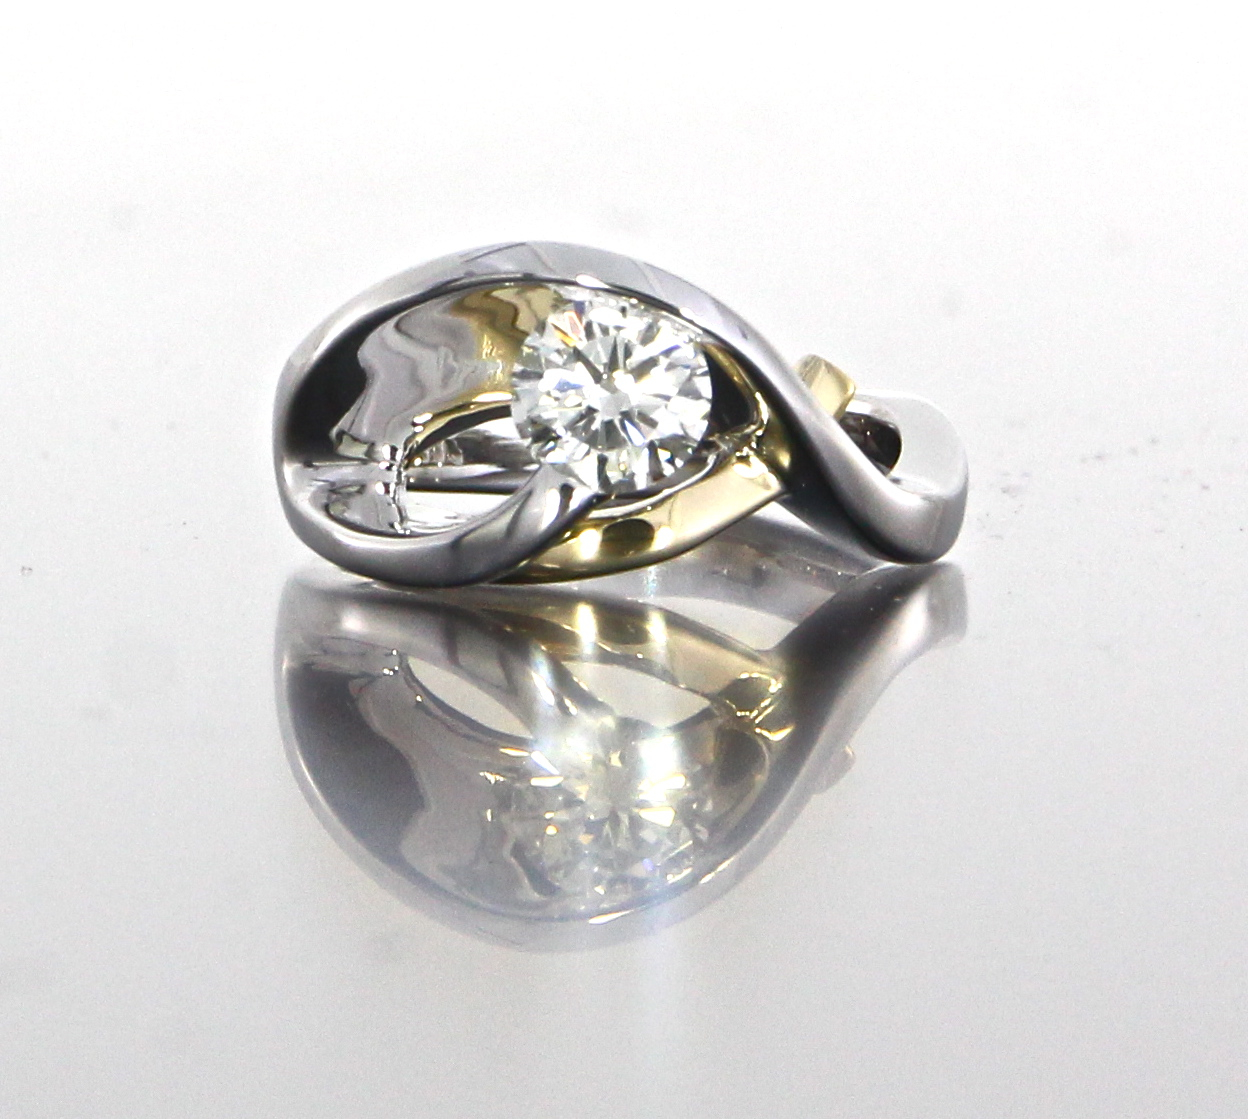 unique-ladies-modern-diamond-engagement-ring-craft-revival-jewelry-store-grand-rapids